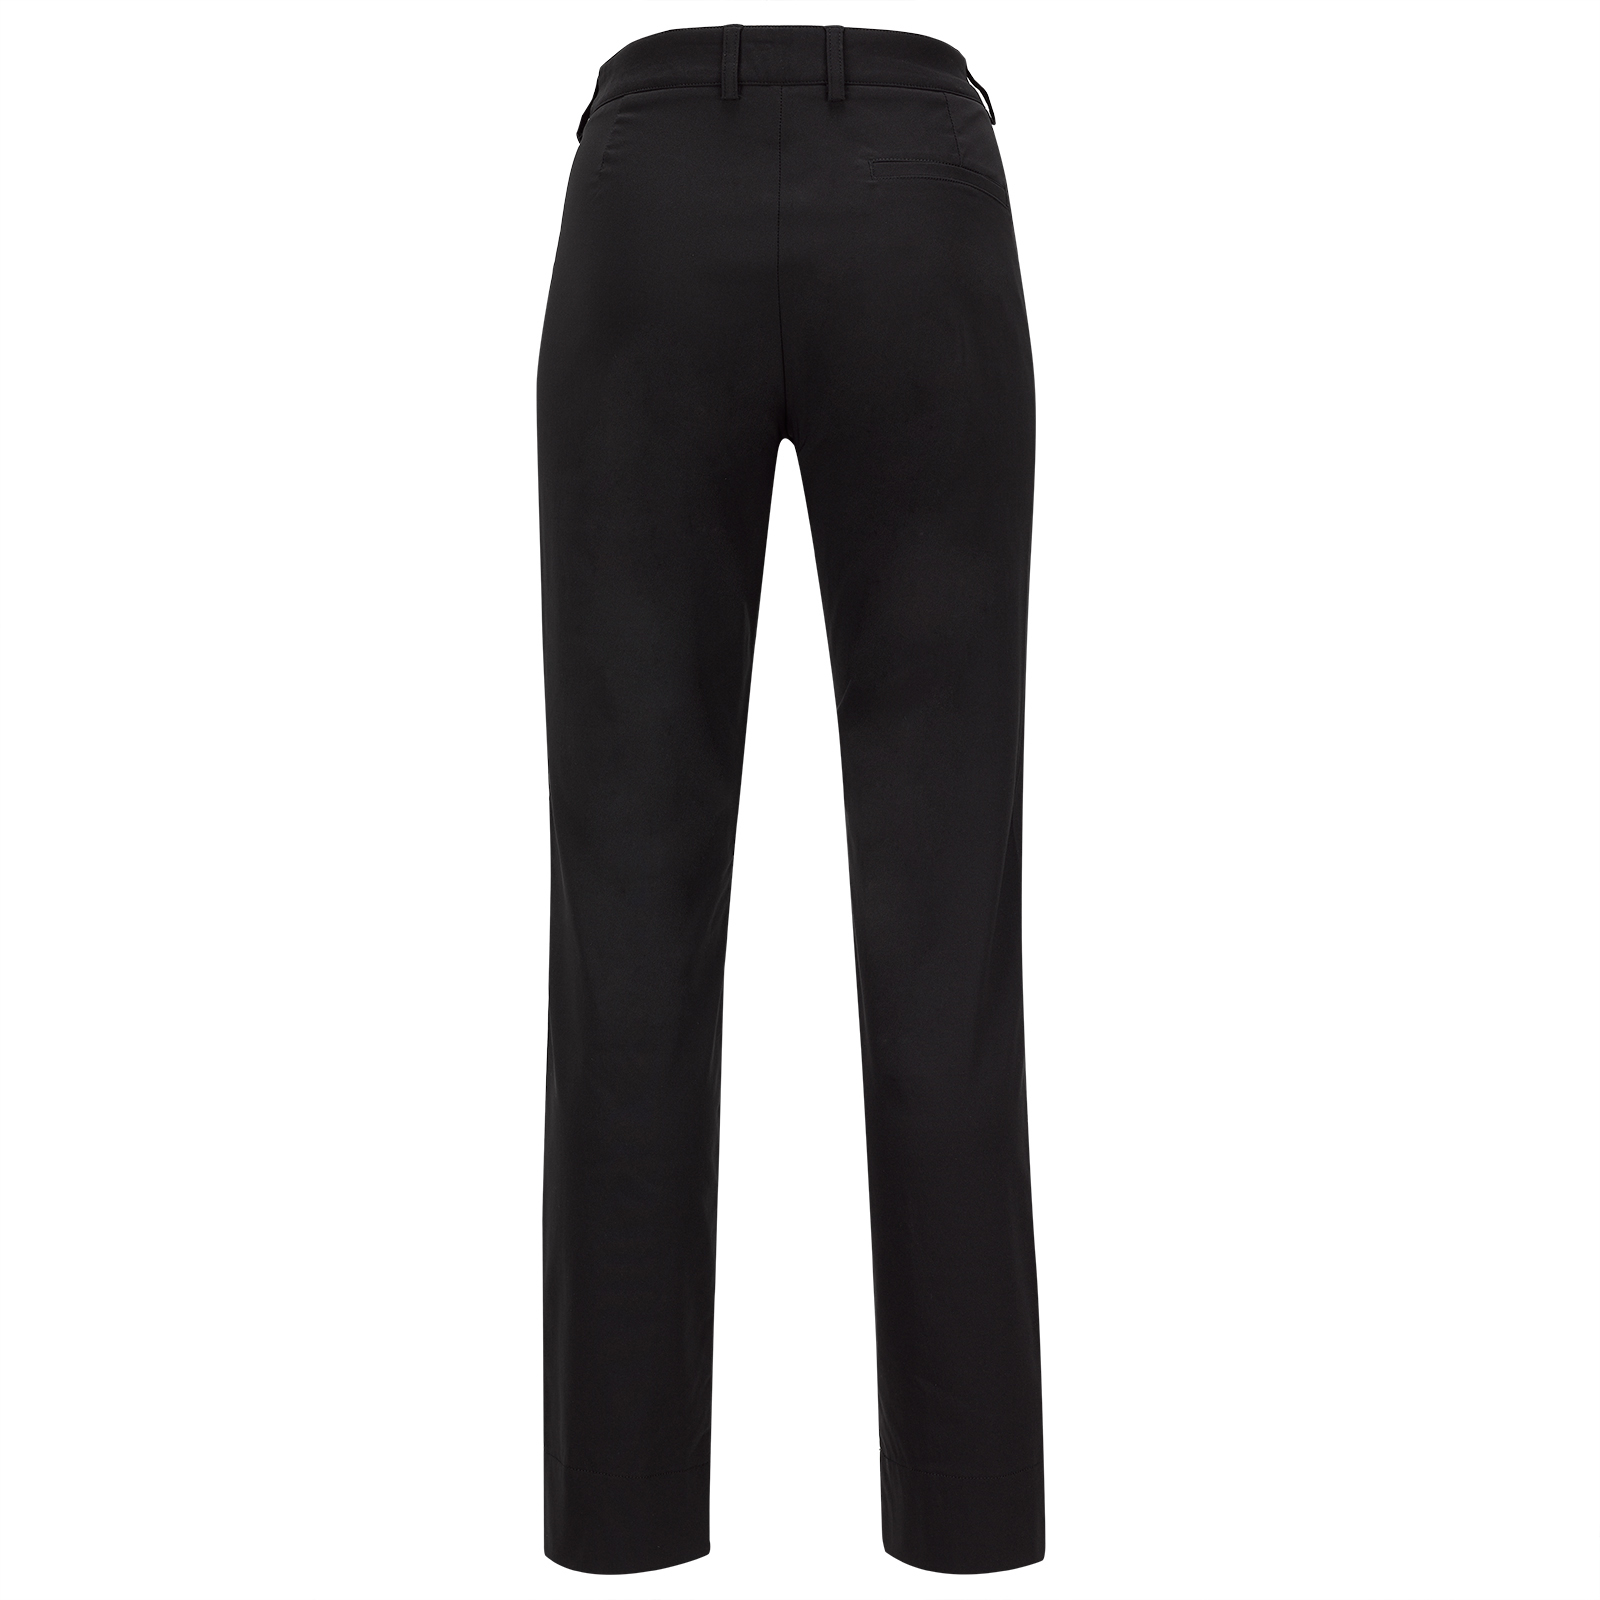 Damen 7/8 Stretch-Golfhose mit Cold Protection in Slim-Fit